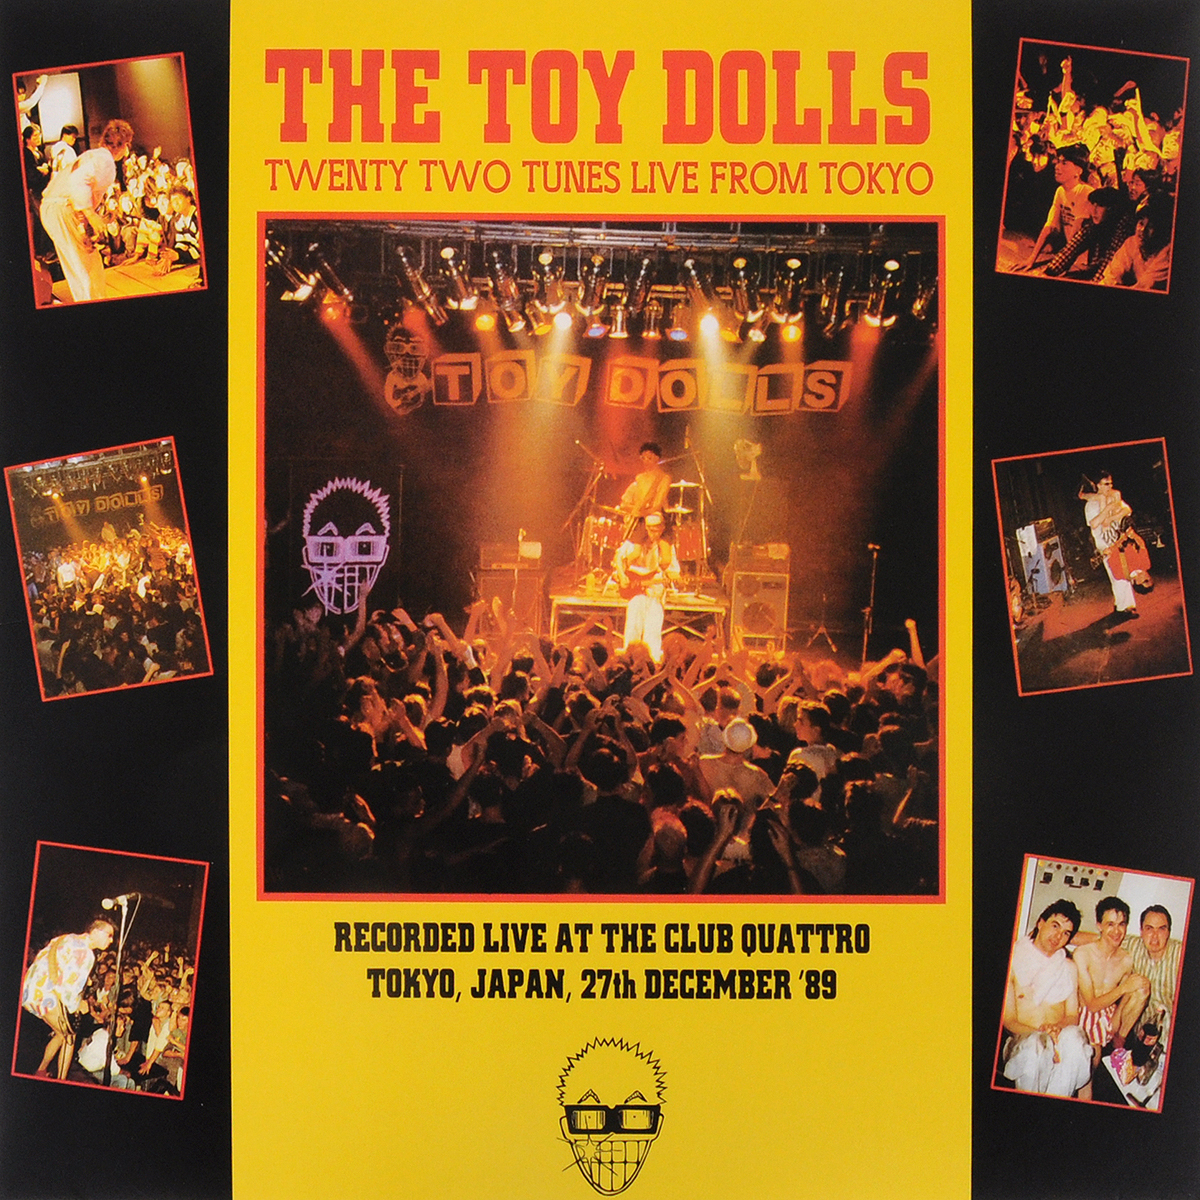 The Toy Dolls The Toy Dolls. Twenty Two Tunes Live From Tokyo (2LP) cd hugh laurie let them talk